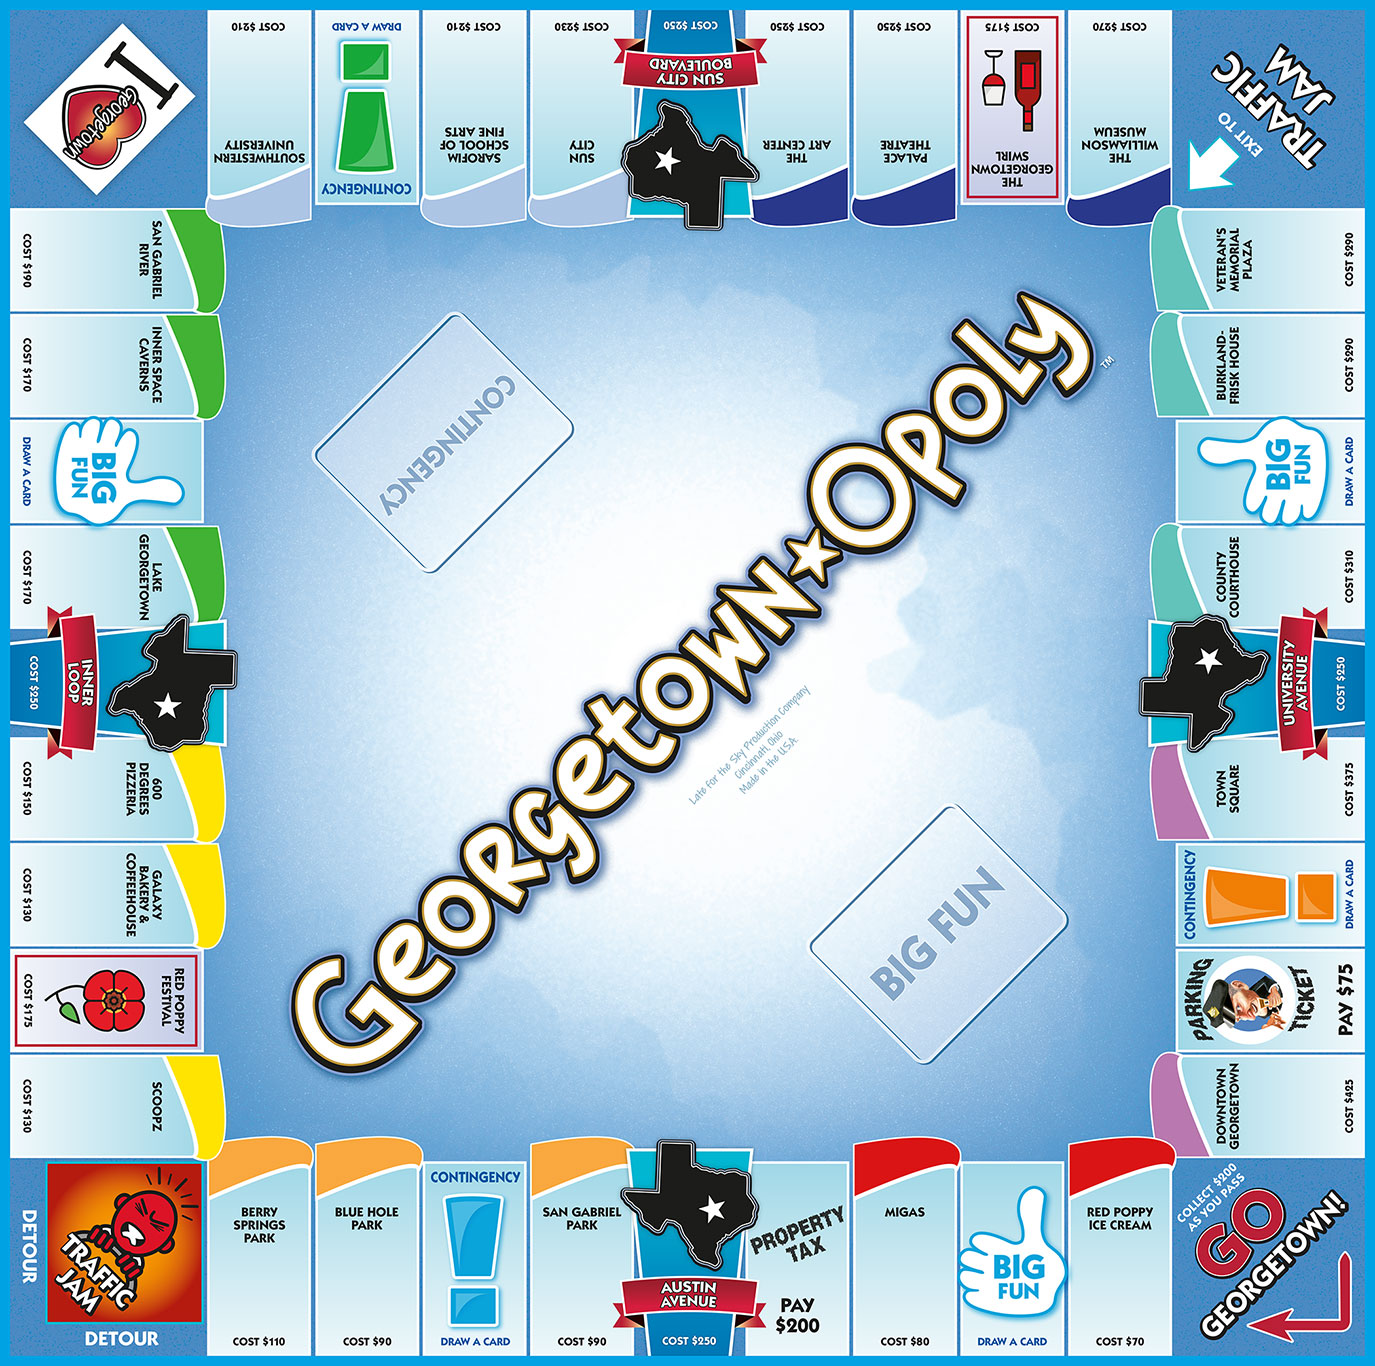 GEORGETOWN-OPOLY Board Game